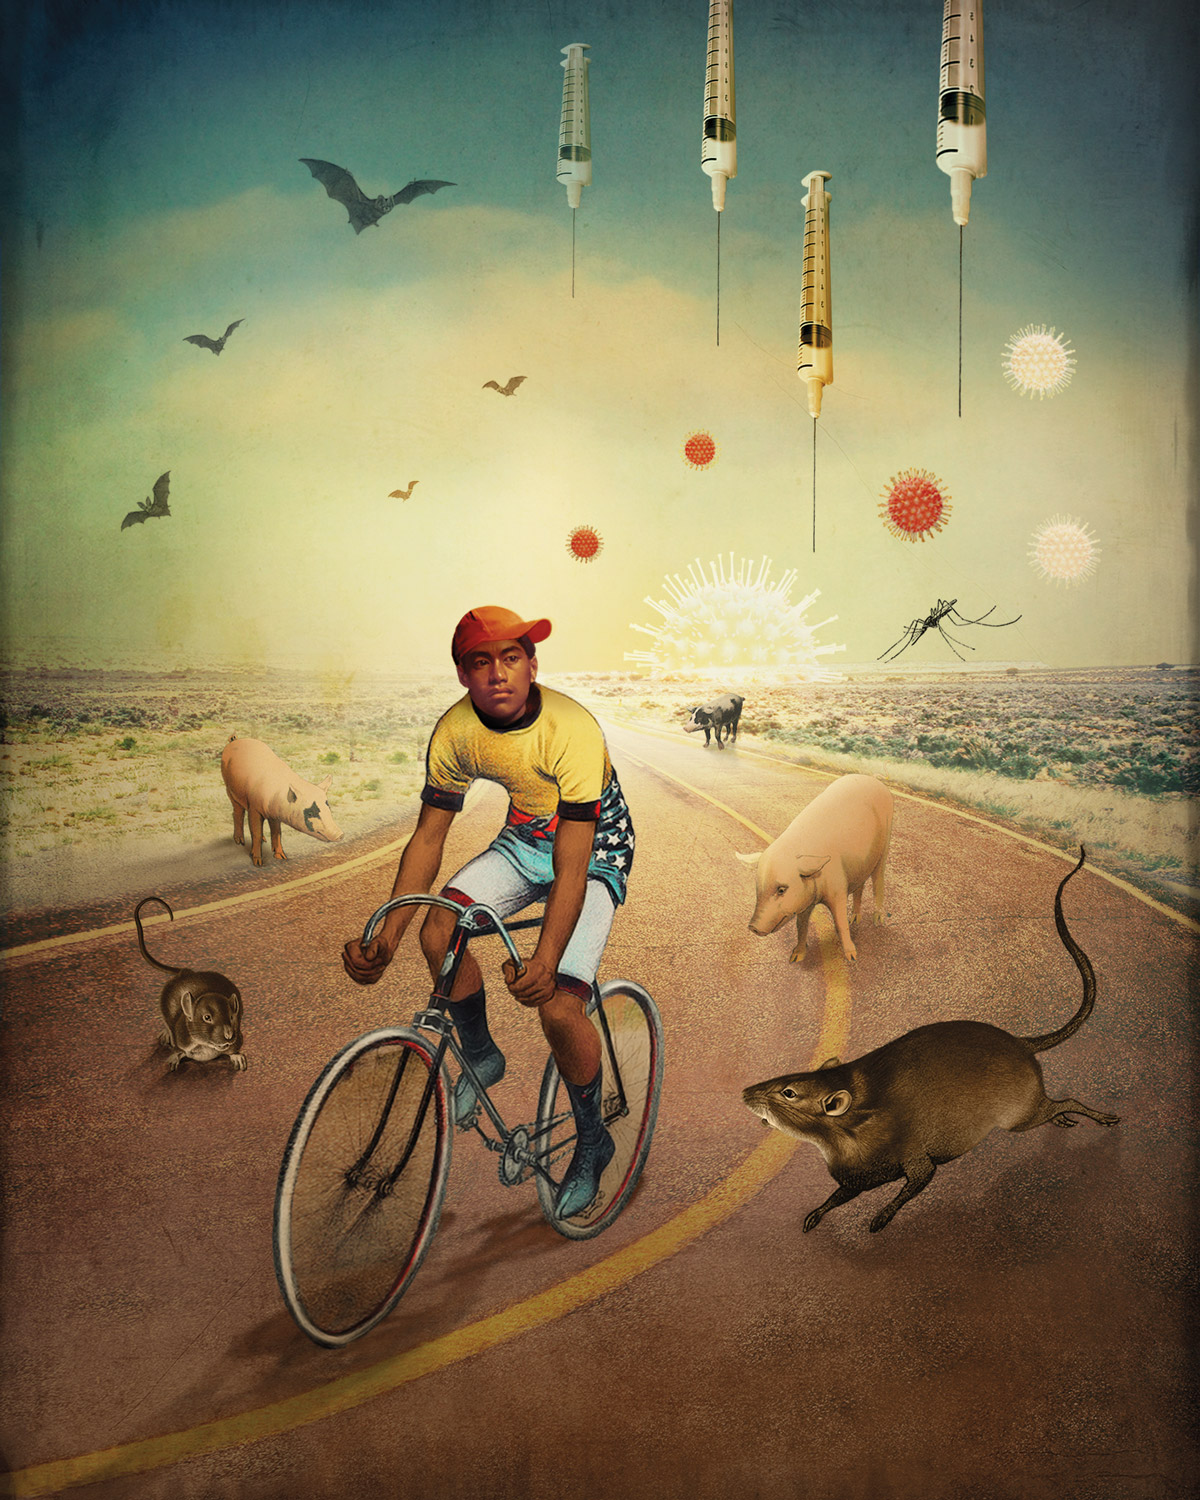 Man riding bike on a desert freeway surrounded by animals and insects